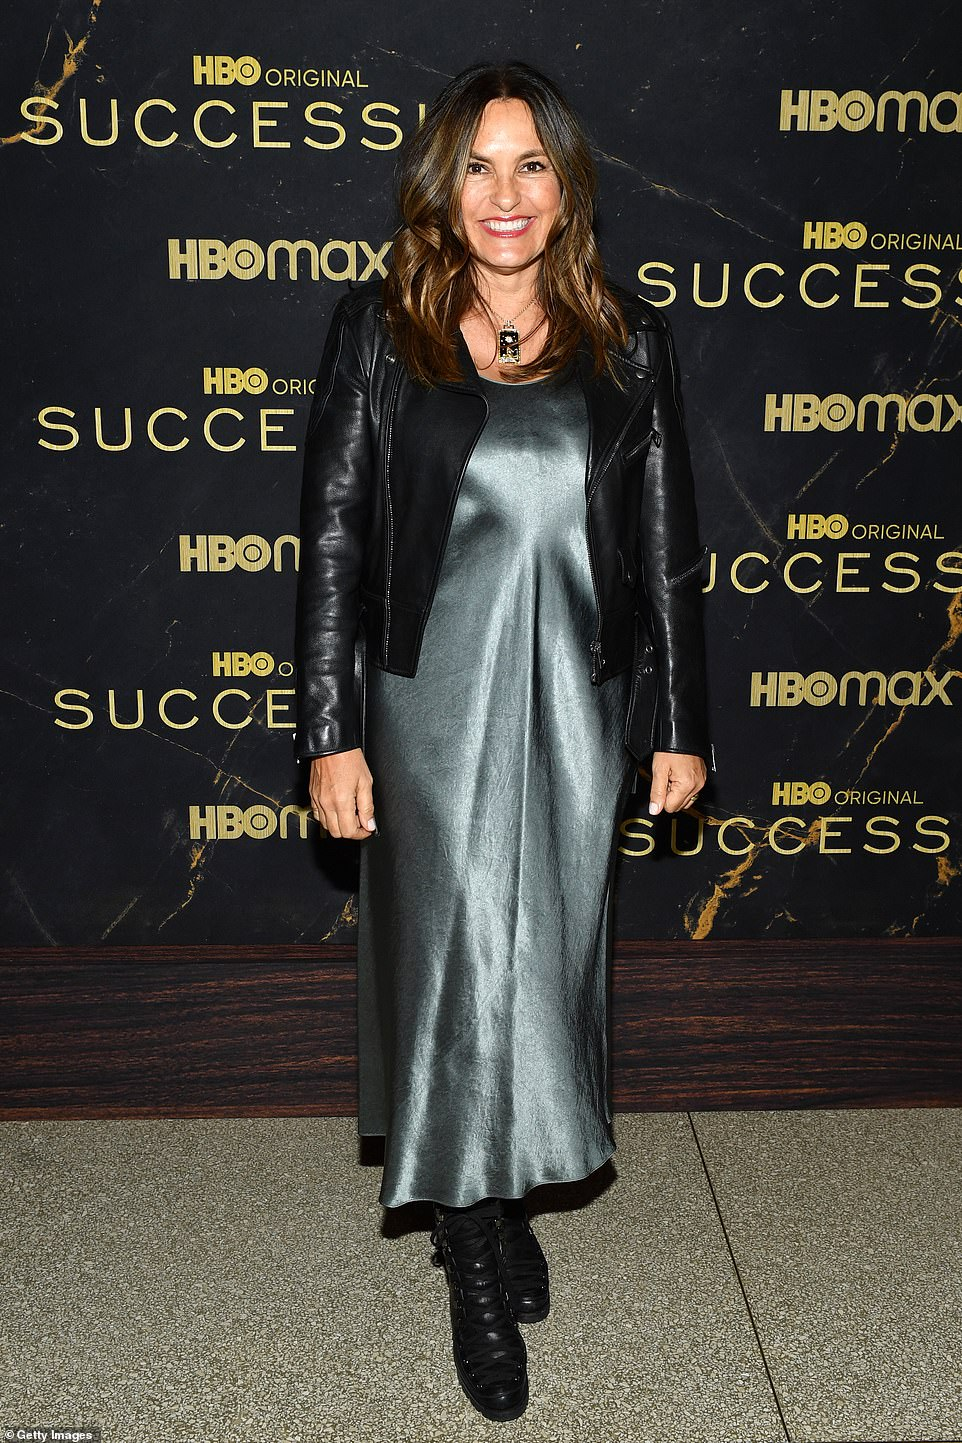 Edgy:Mariska Hargitay showed off her edgy side in a black motorcycle jacket layered over a blue slip dress